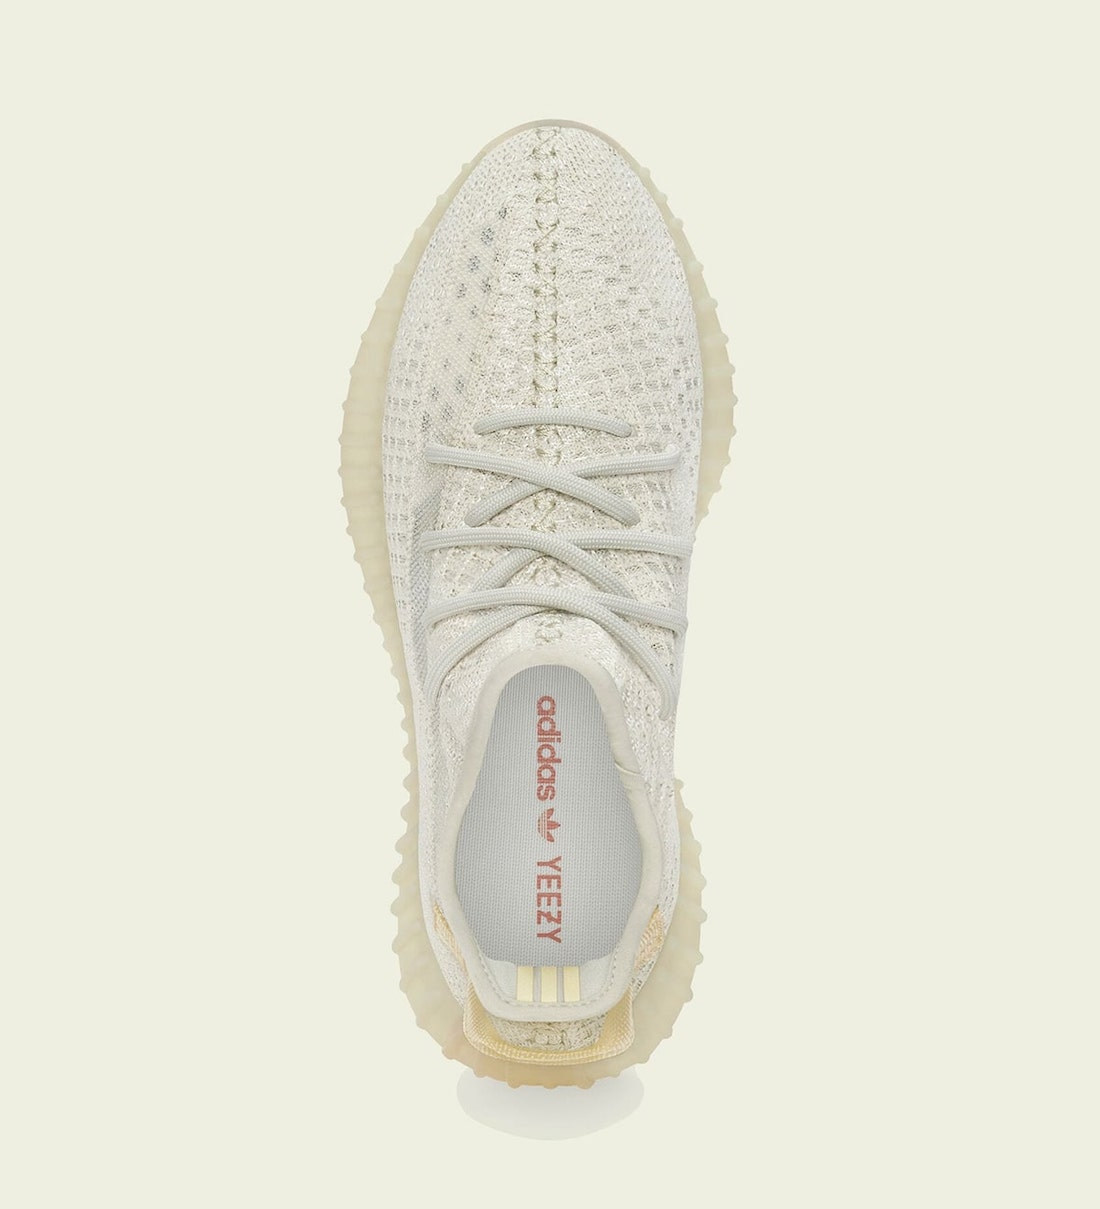 adidas Yeezy Boost 350 V2 Light GY3438 Release Date Price